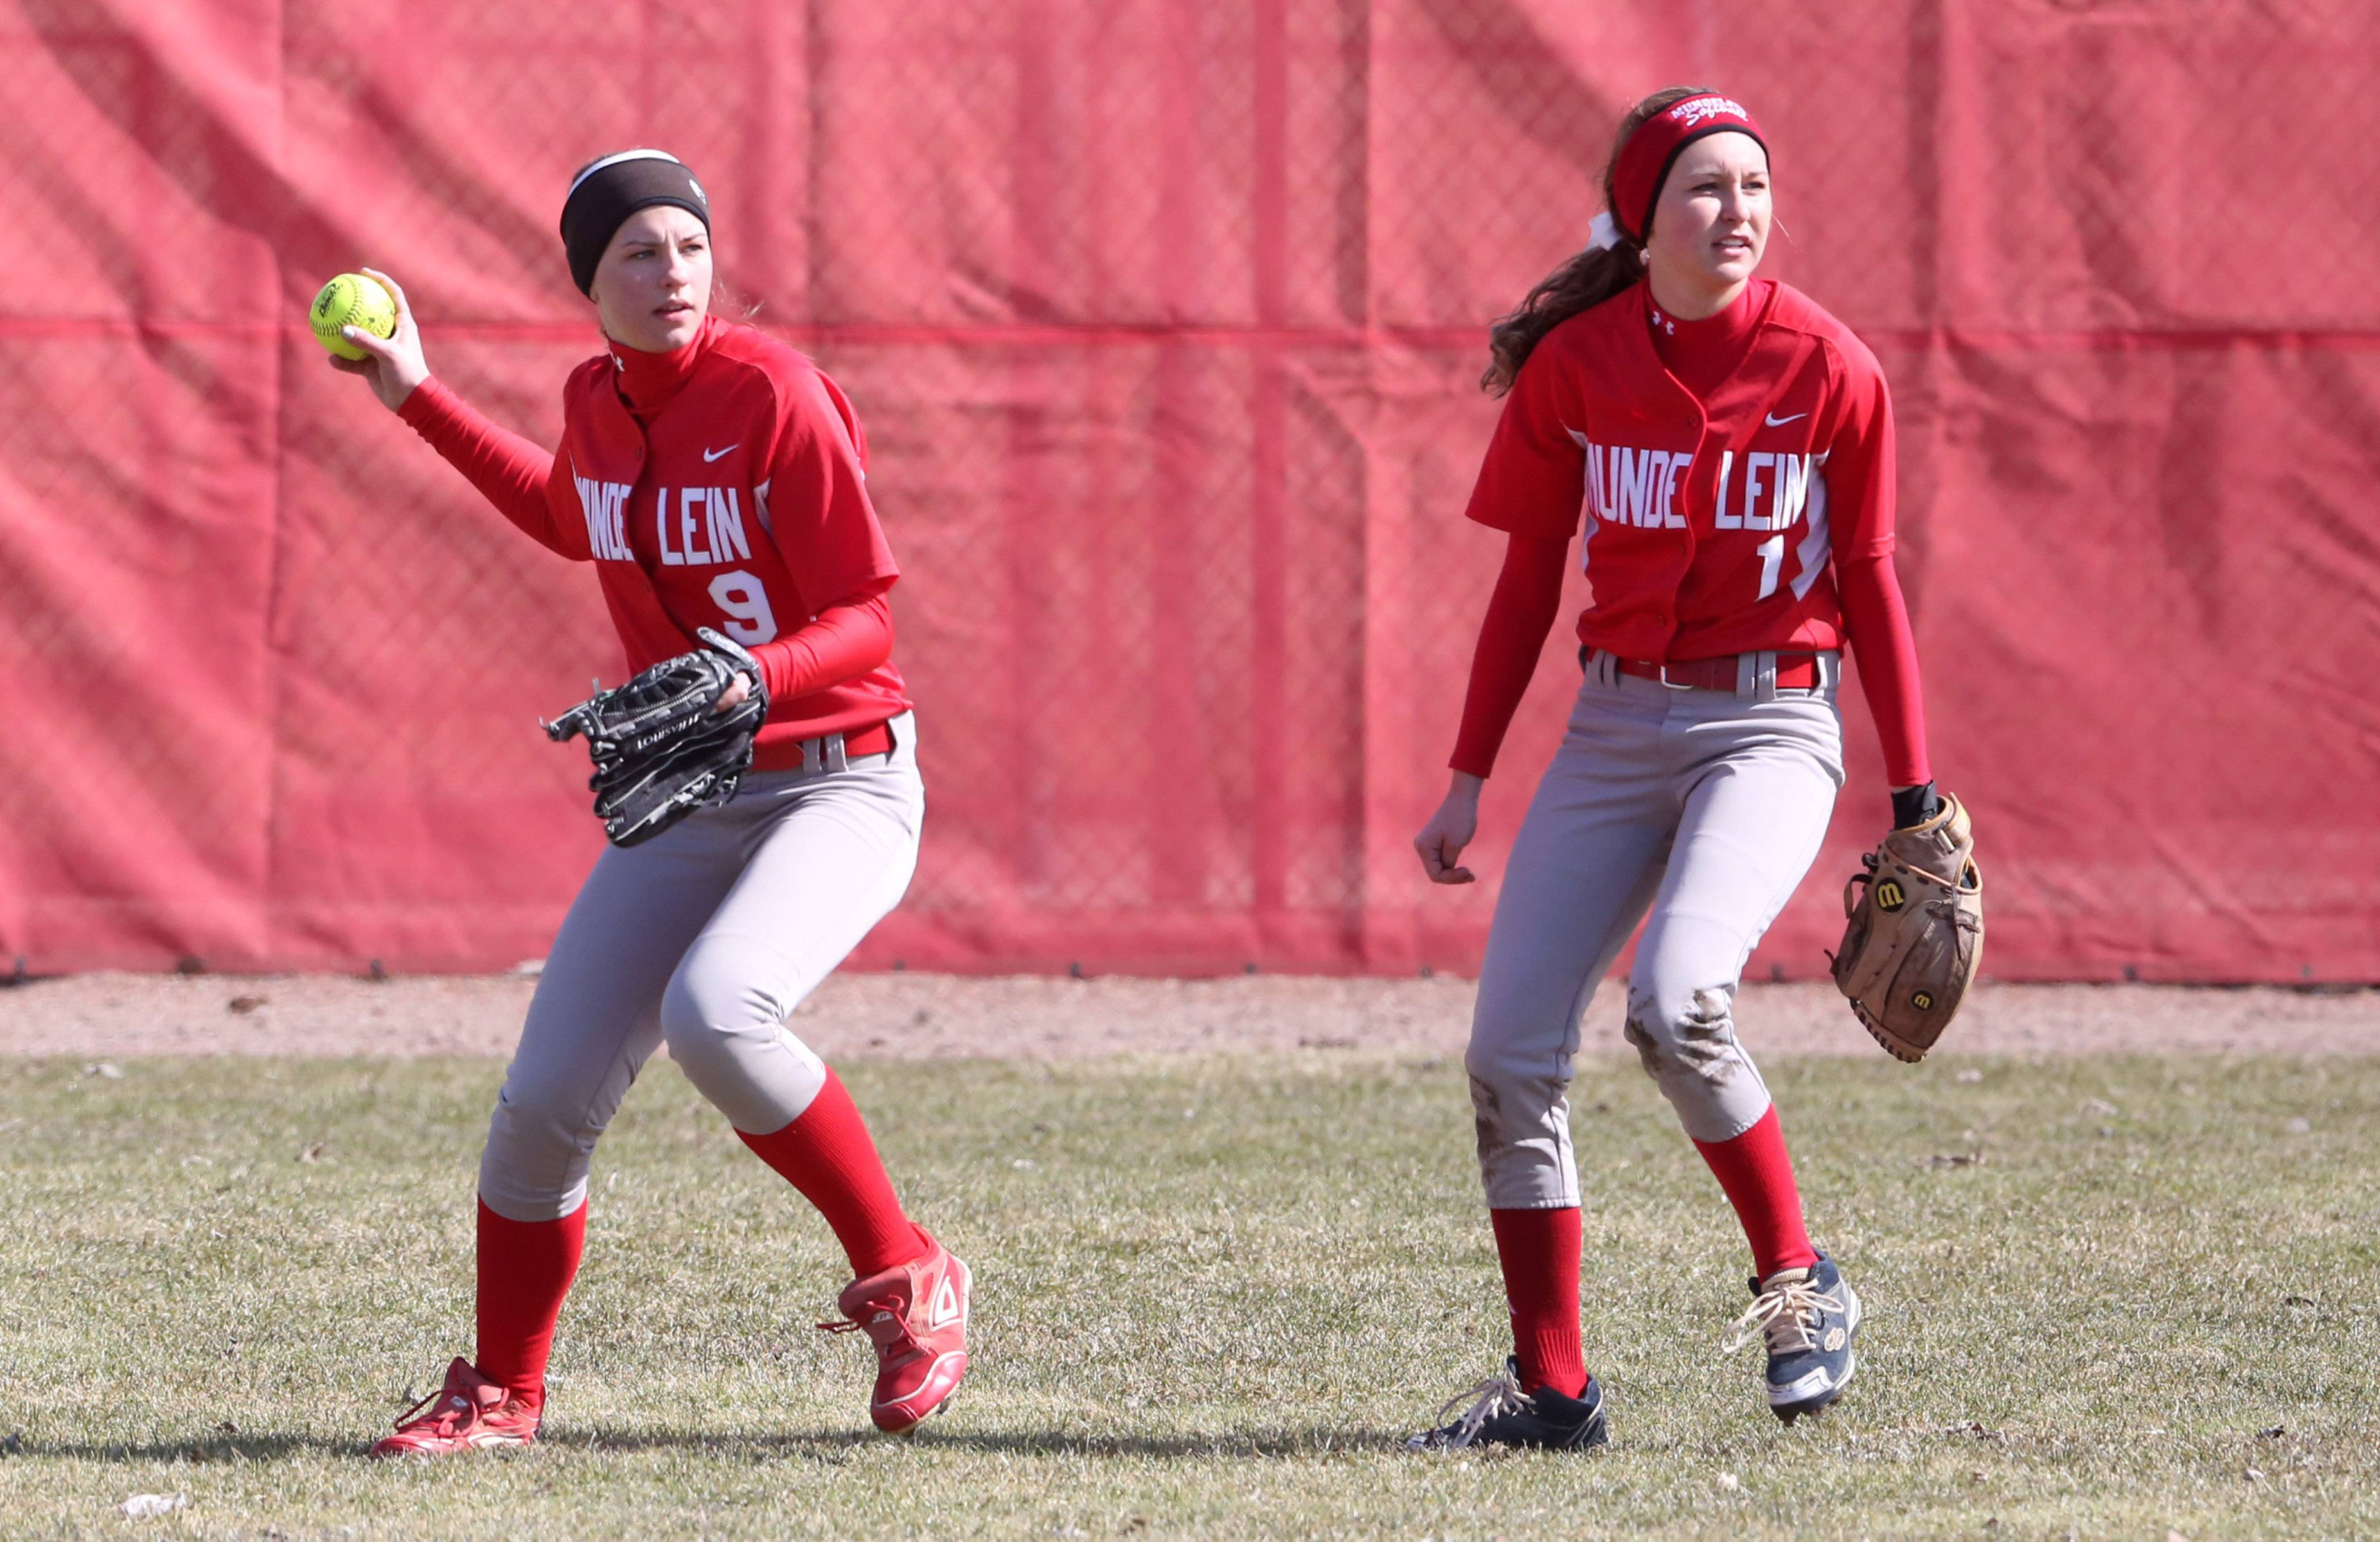 Mundelein center fielder Karlee Bussche throws to second base with left fielder Danielle Beelow watching runners against Elk Grove at the Fields of Dreams on Saturday in Barrington.